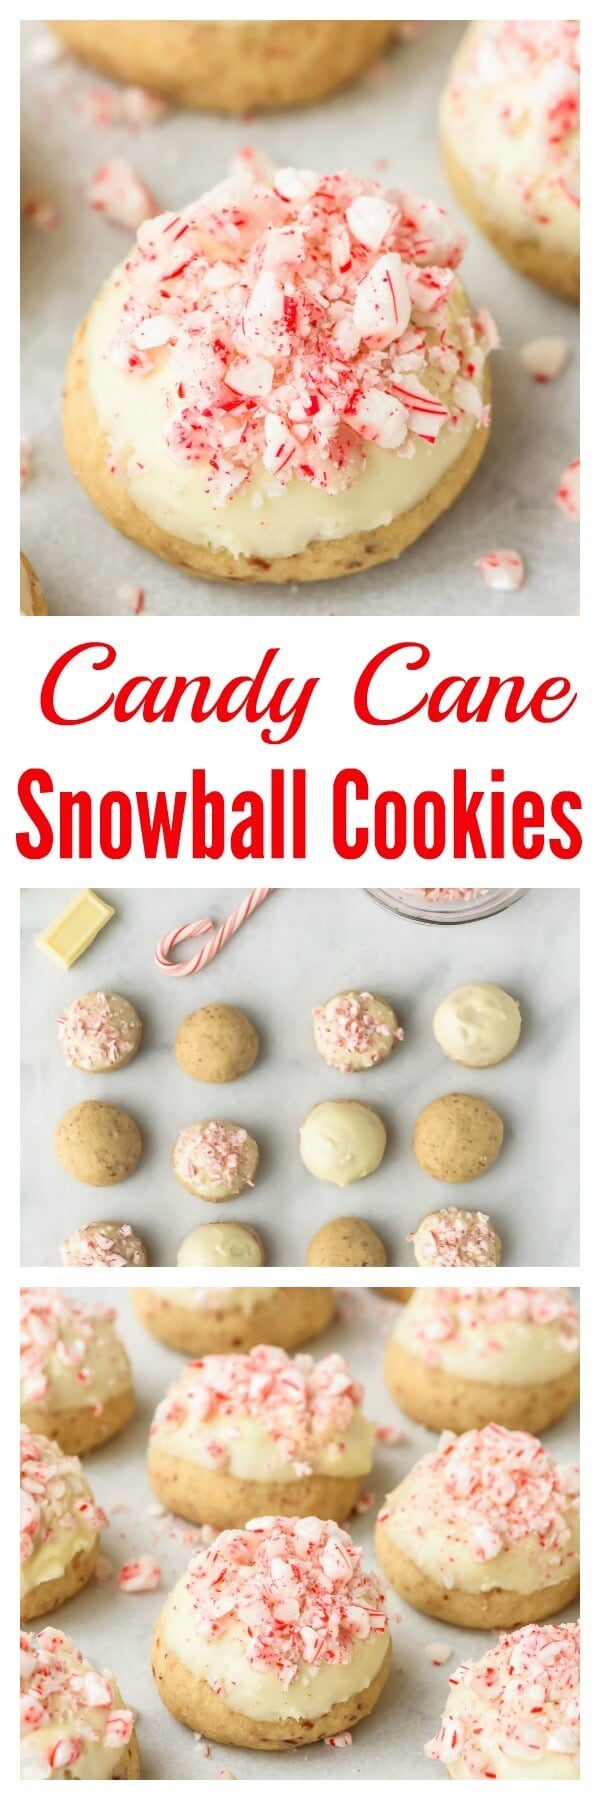 Candy Cane Snowball Cookies